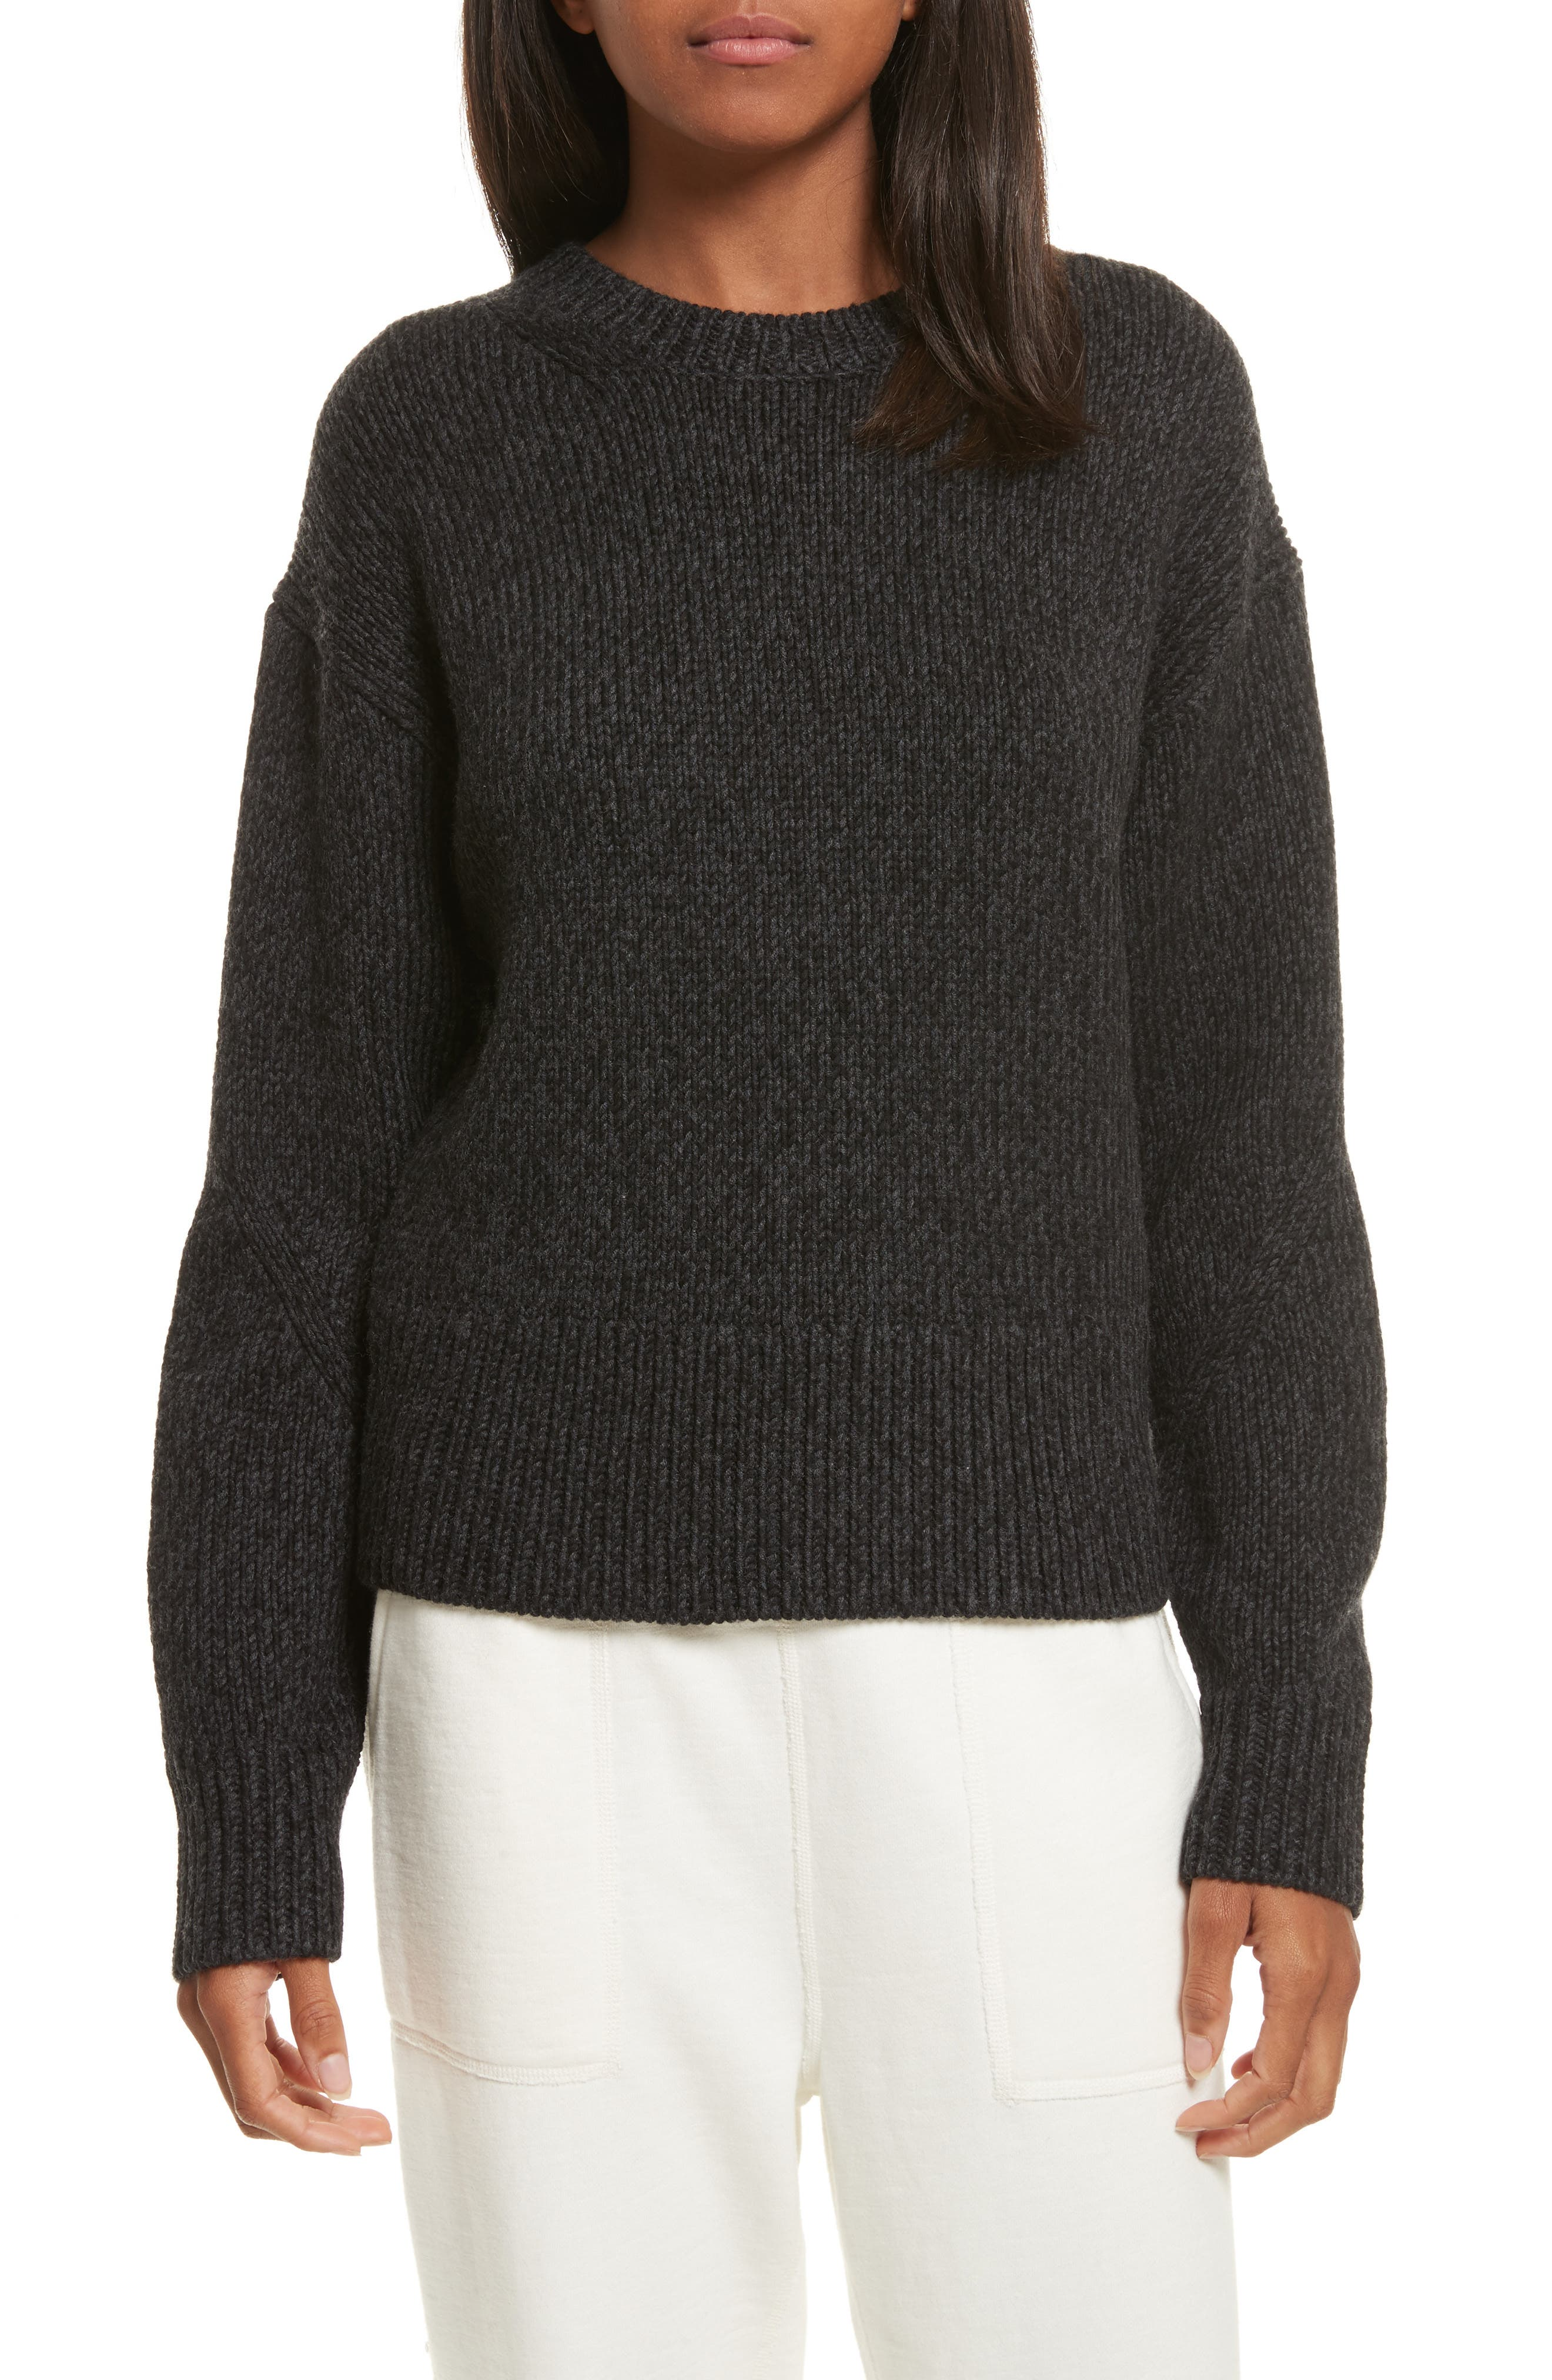 Alternate Image 1 Selected - rag & bone/JEAN Sheila Crewneck Sweater